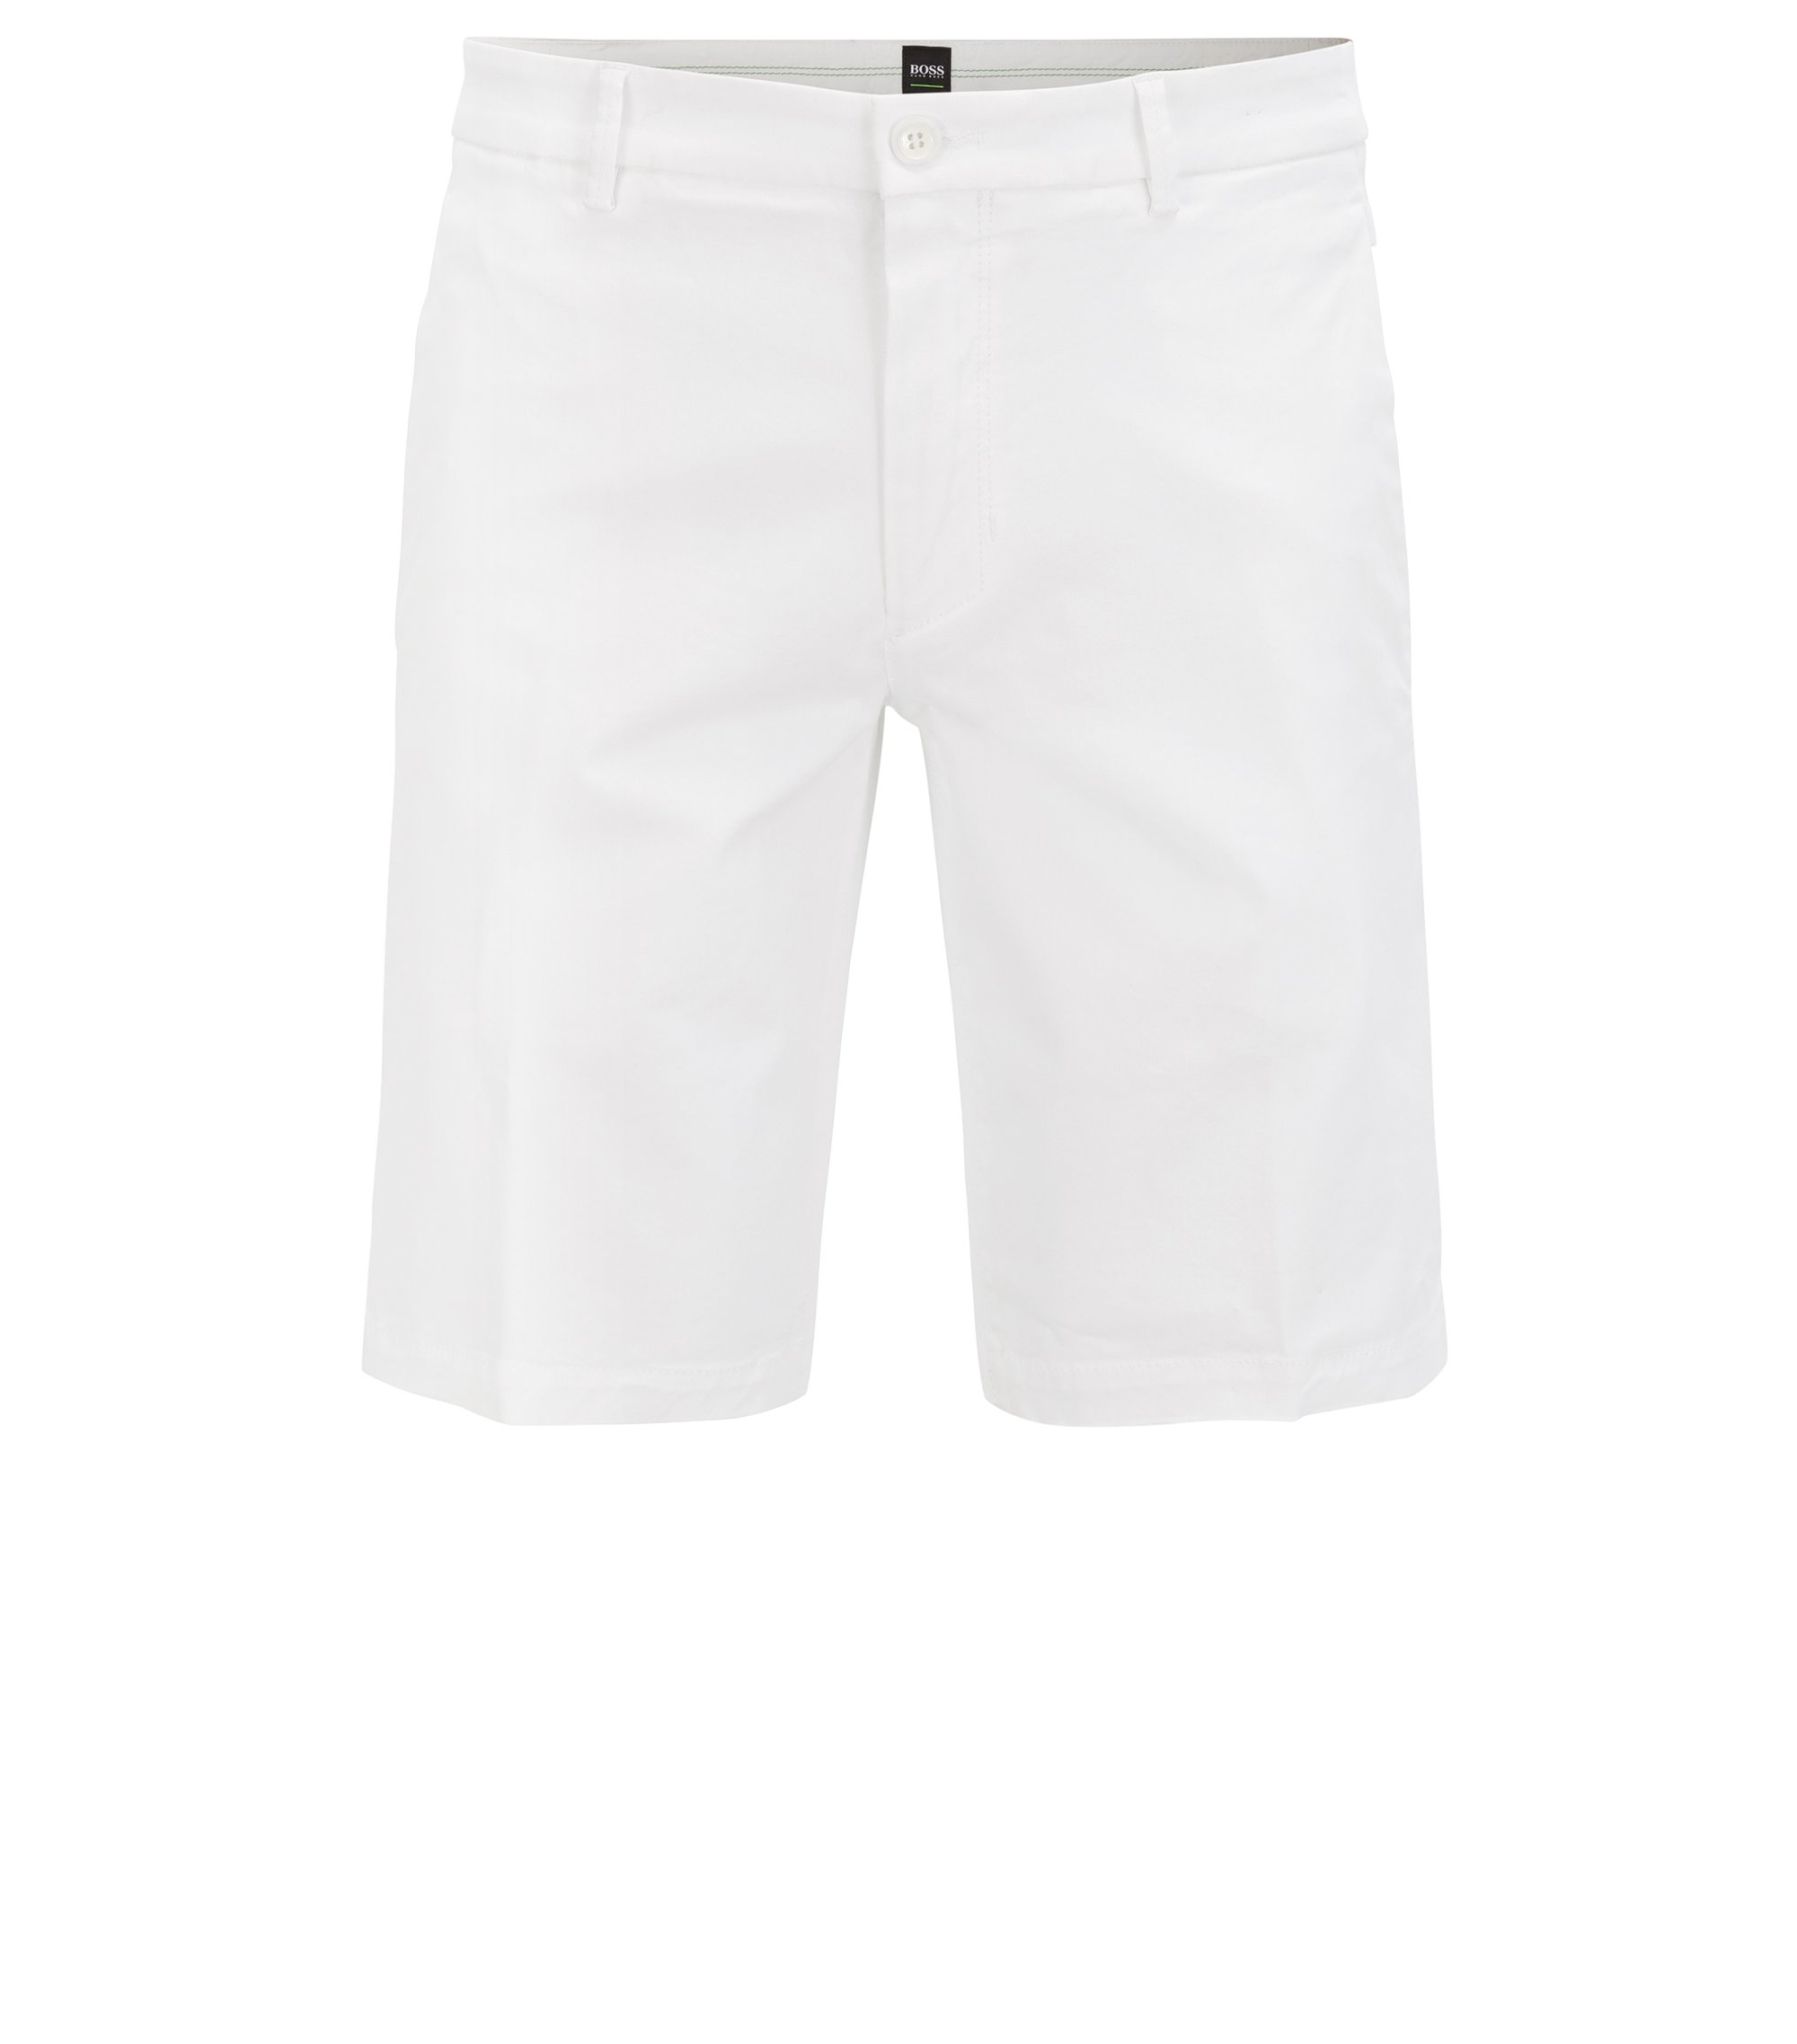 Shorts slim fit en satén elástico, Blanco